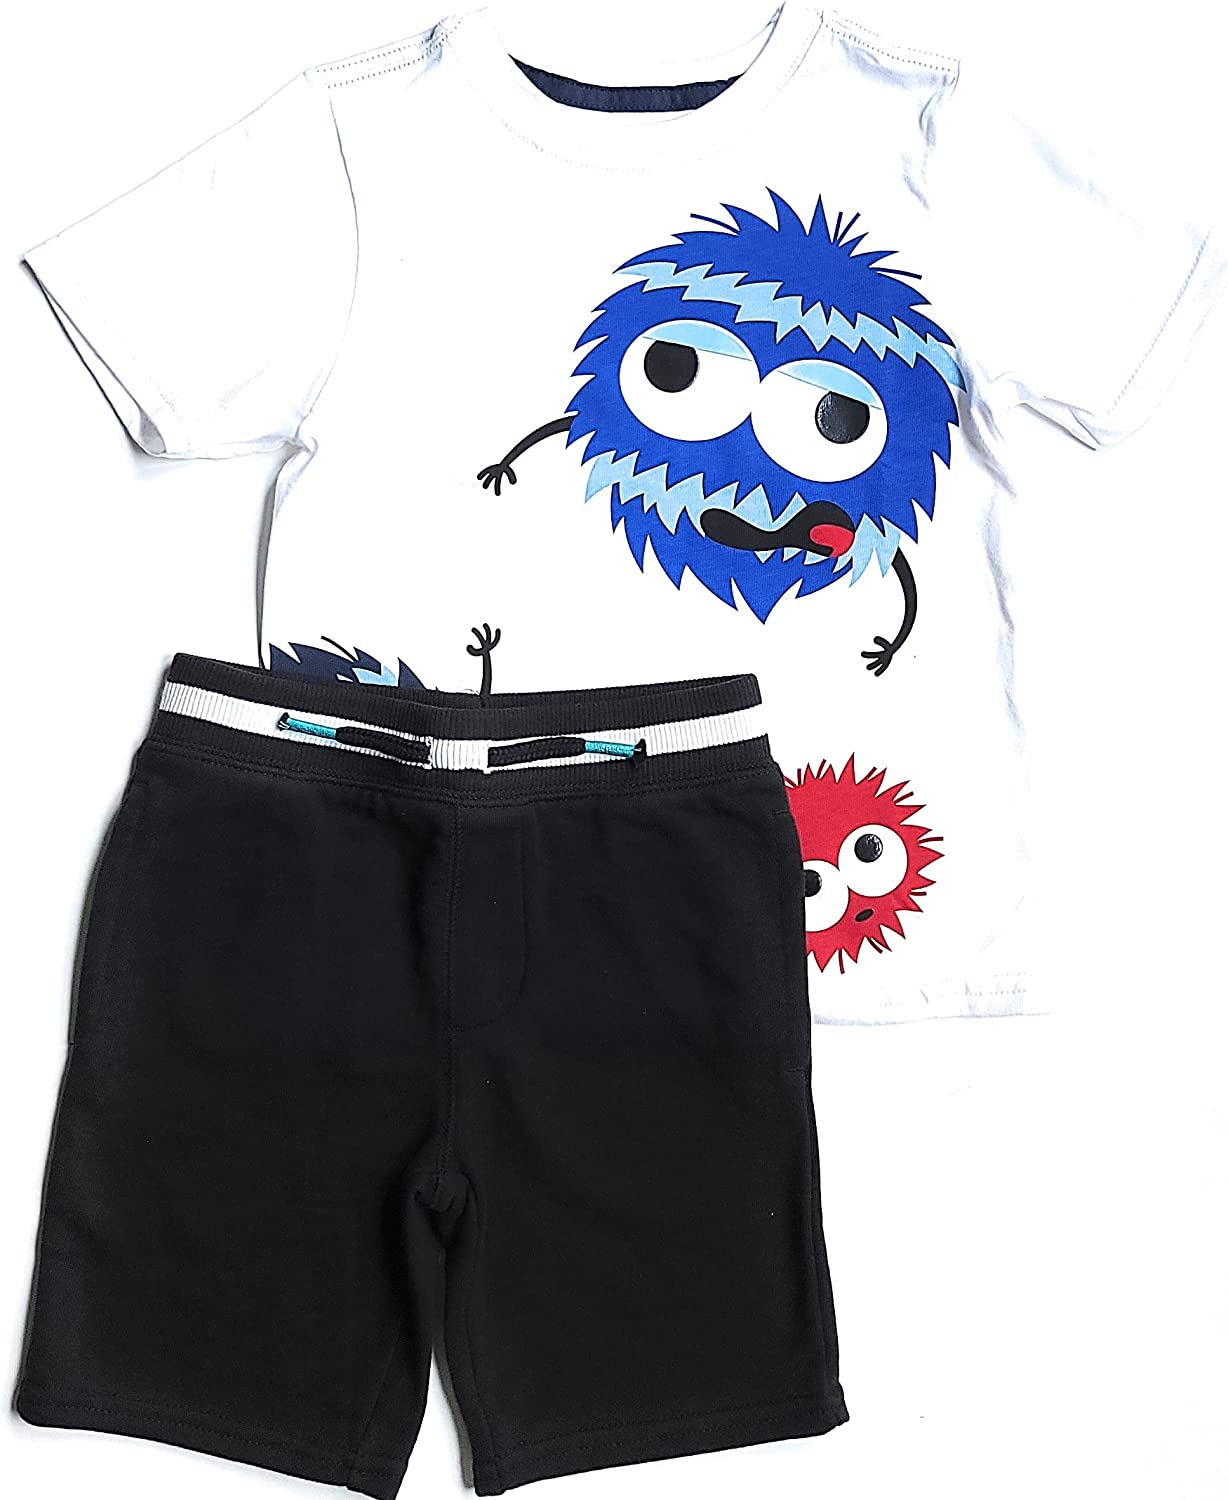 2-Piece Max 50% 40% OFF Cheap Sale OFF Jersey Tees Shorts Set 4T Monster Head Clipart White